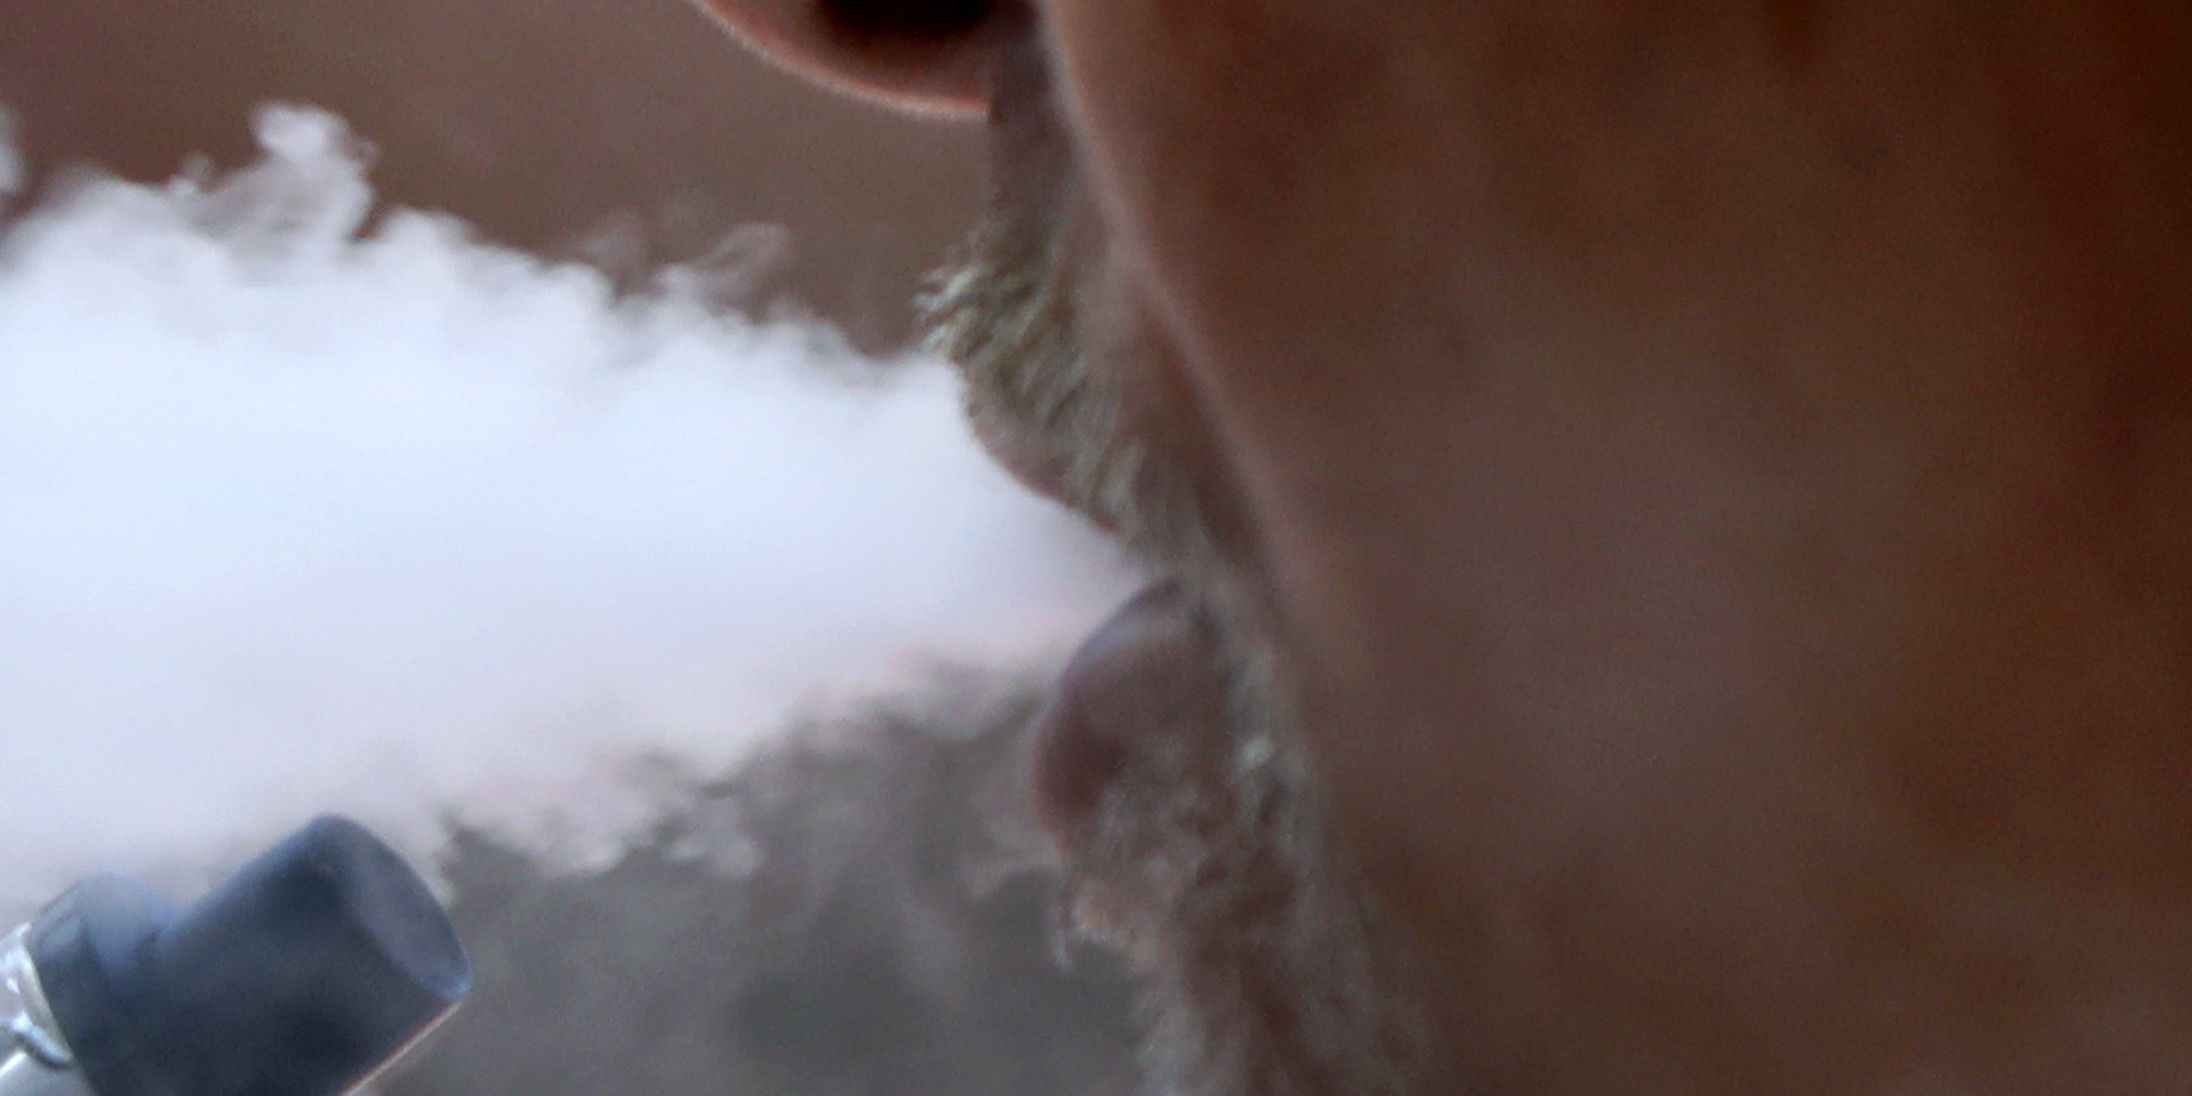 Michigan moves to be 1st state to ban flavored e-cigarettes